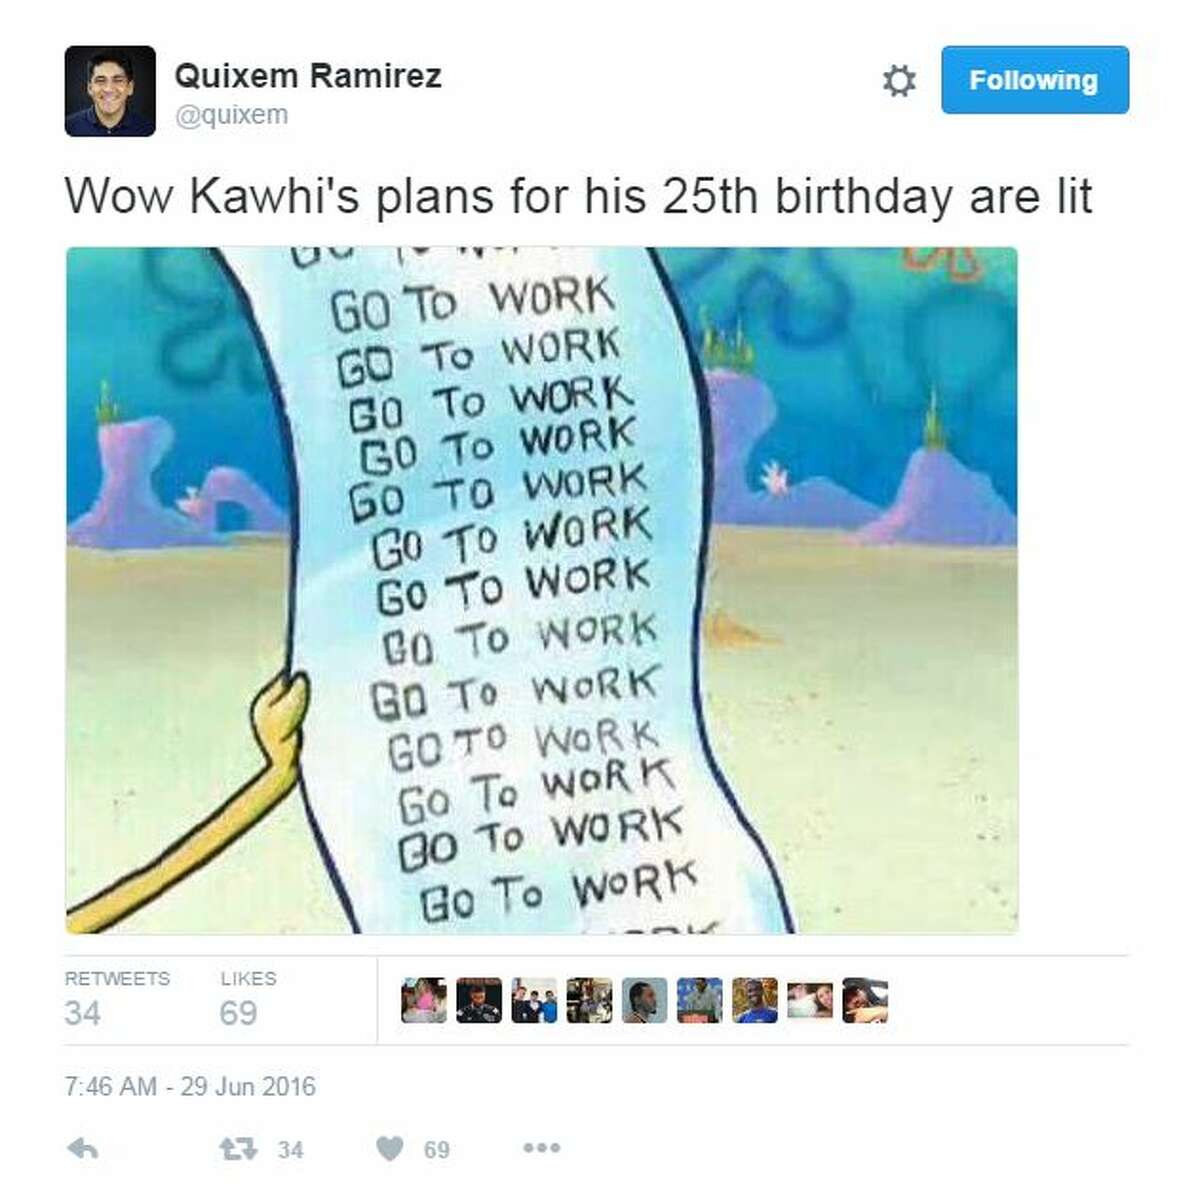 Go to work: Many speculated he'd be working in the gym for his birthday.